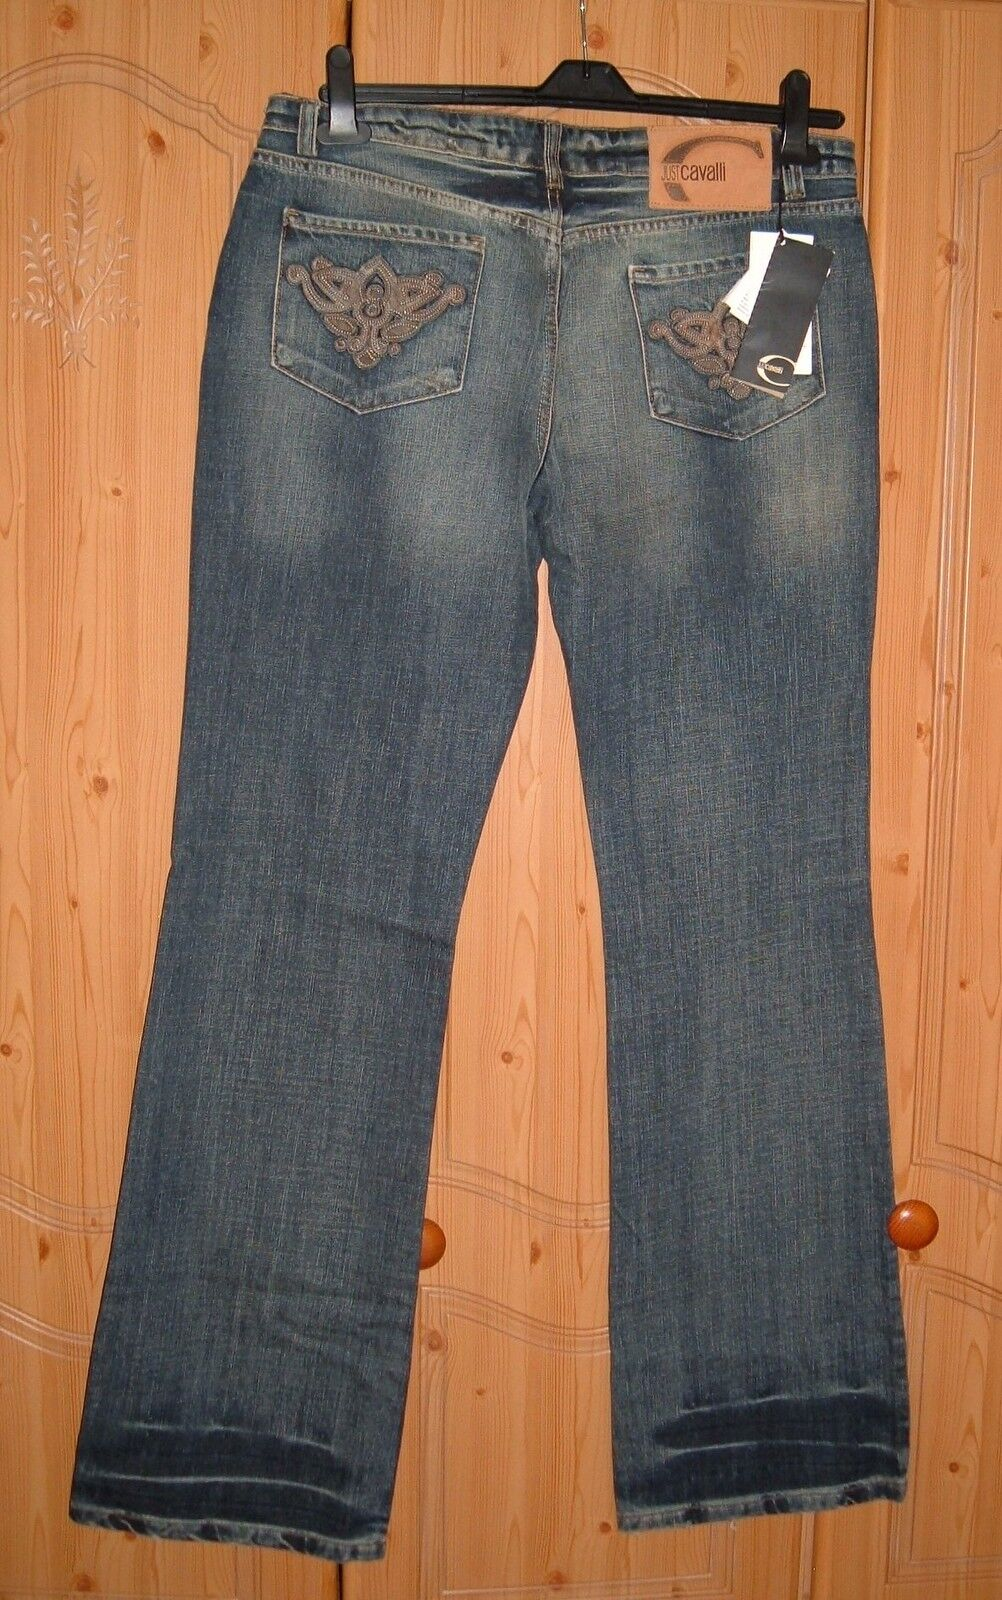 NEW AUTHENTIC Roberto Just Cavalli Low Rise Jeans Italian 34 48 - RRP